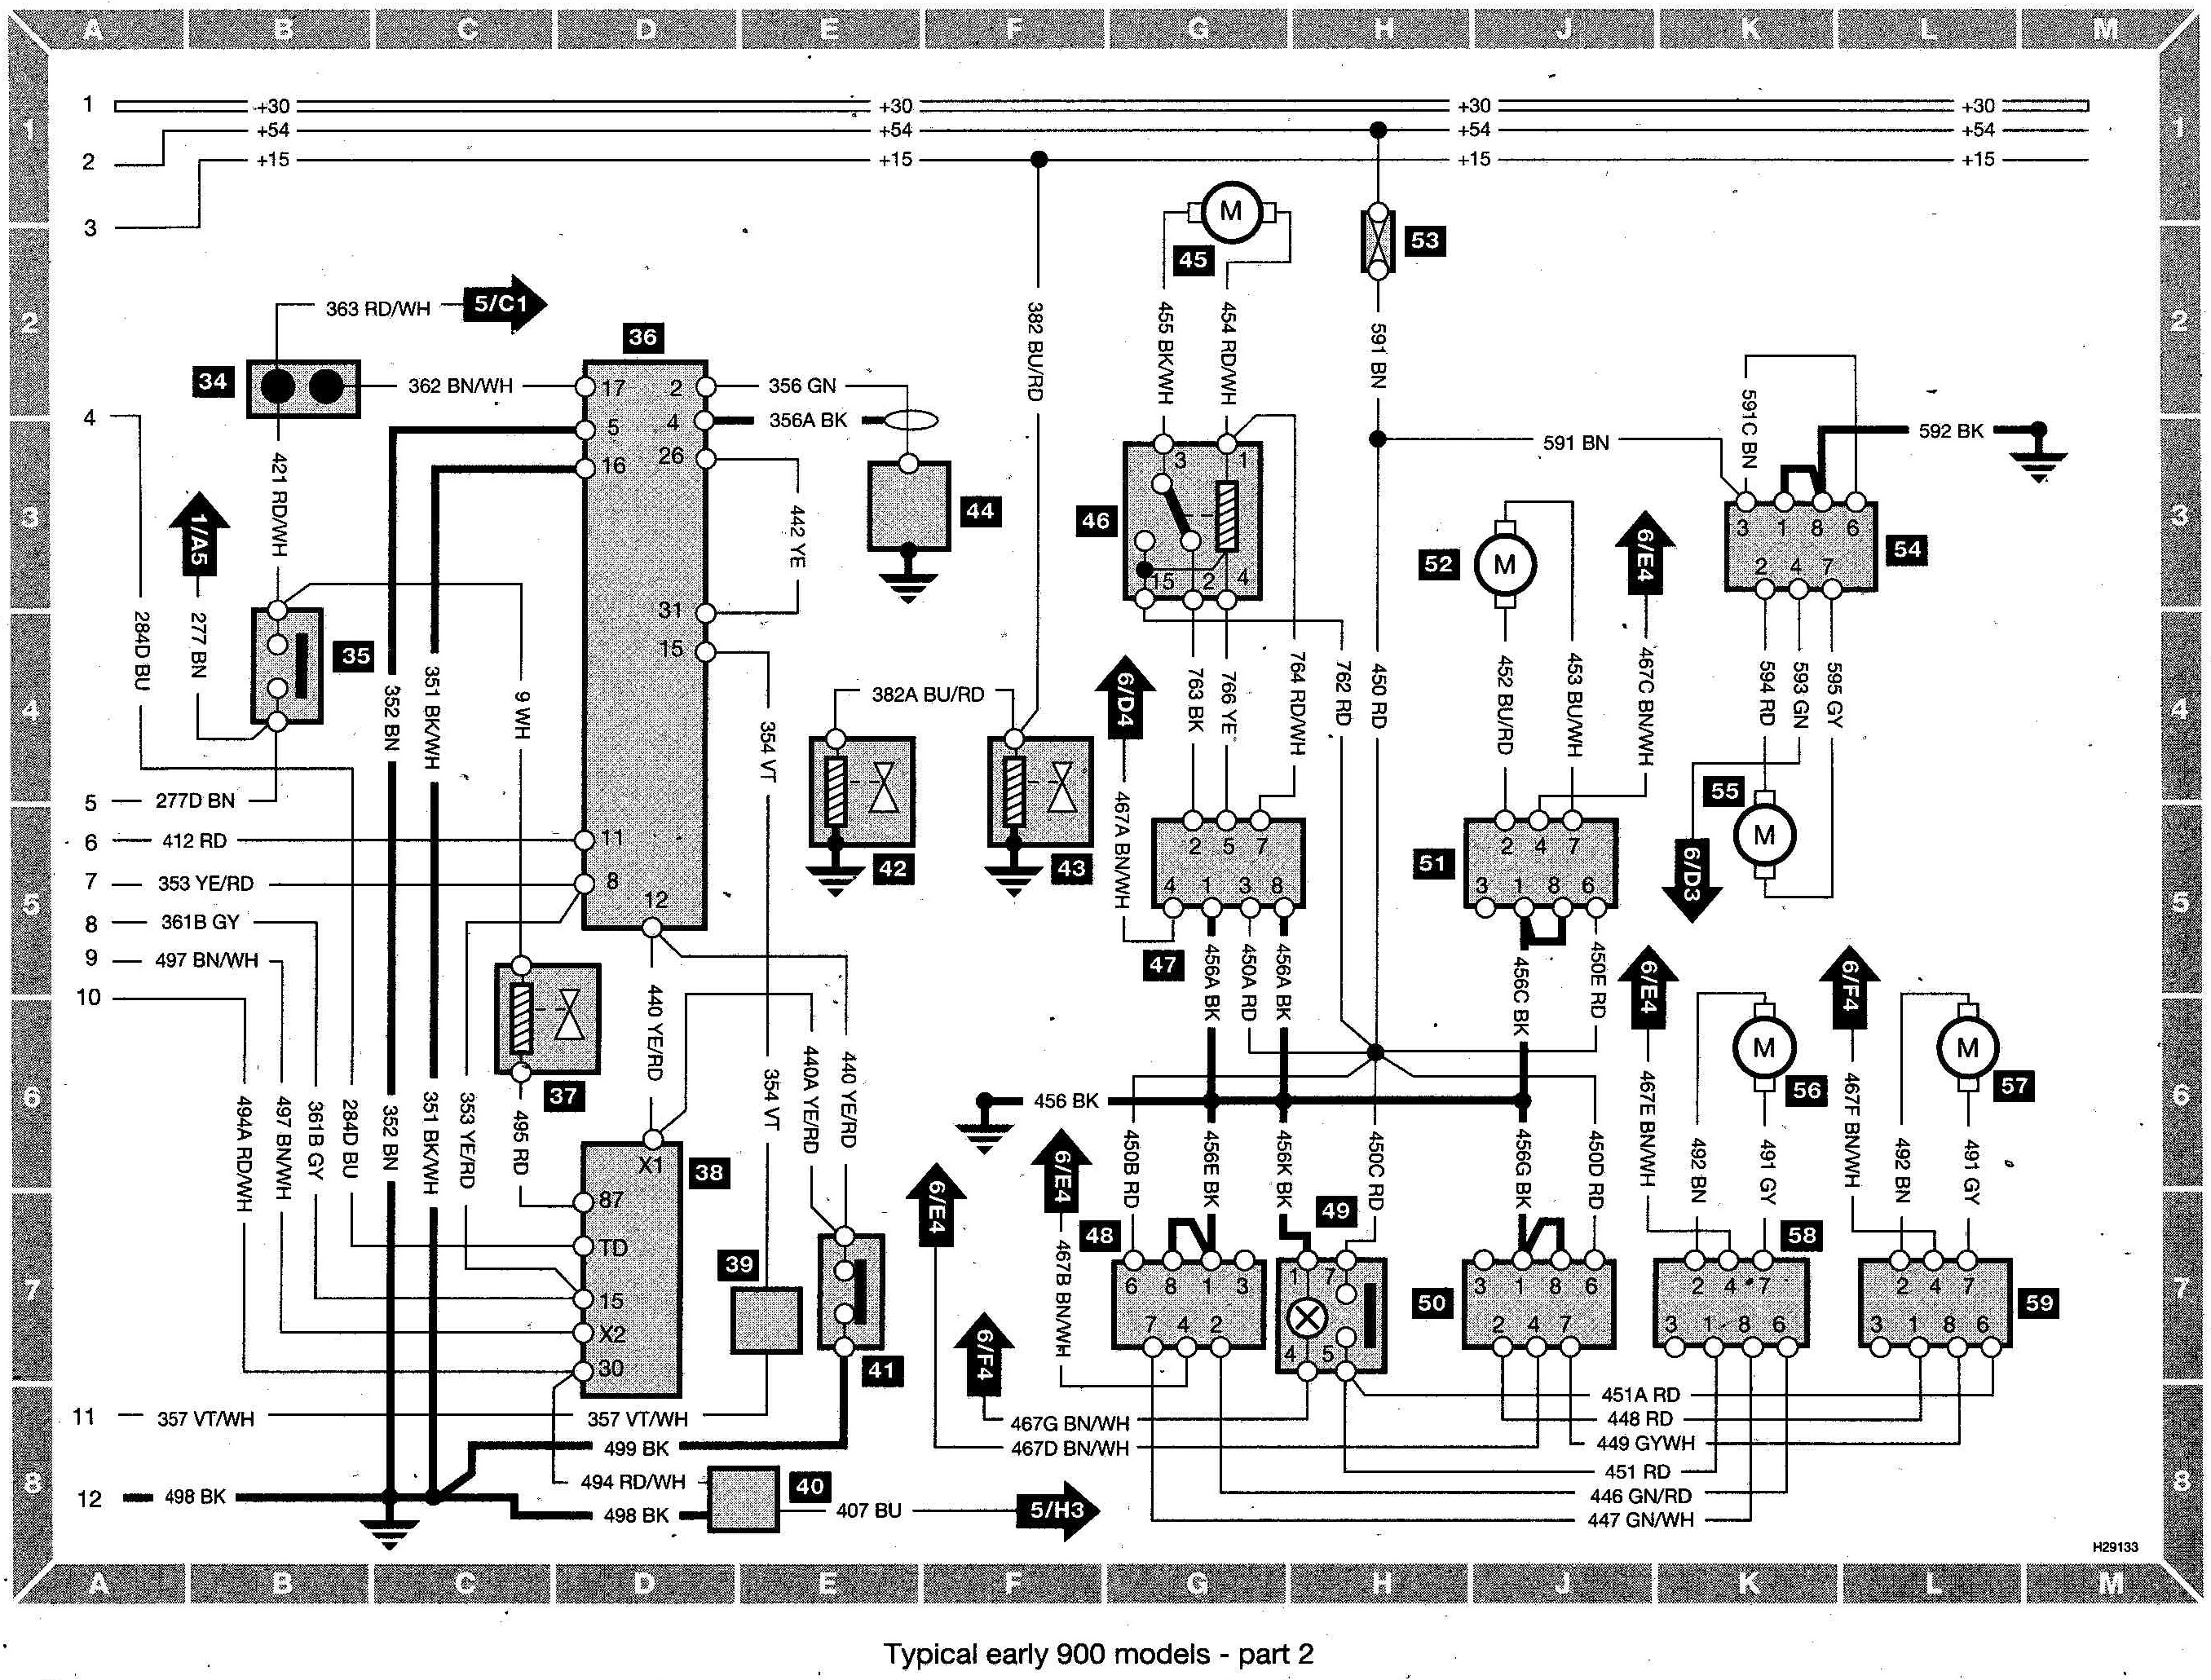 index of saab saab 900 wiring diagram (early models) saab 9-3 audio wiring diagram saab wiring diagram 9 3 Saab 9-3 Wiring-Diagram Hazard Switch saab 9-3 convertible wiring diagram Saab 9-3 Fuse Box Diagram